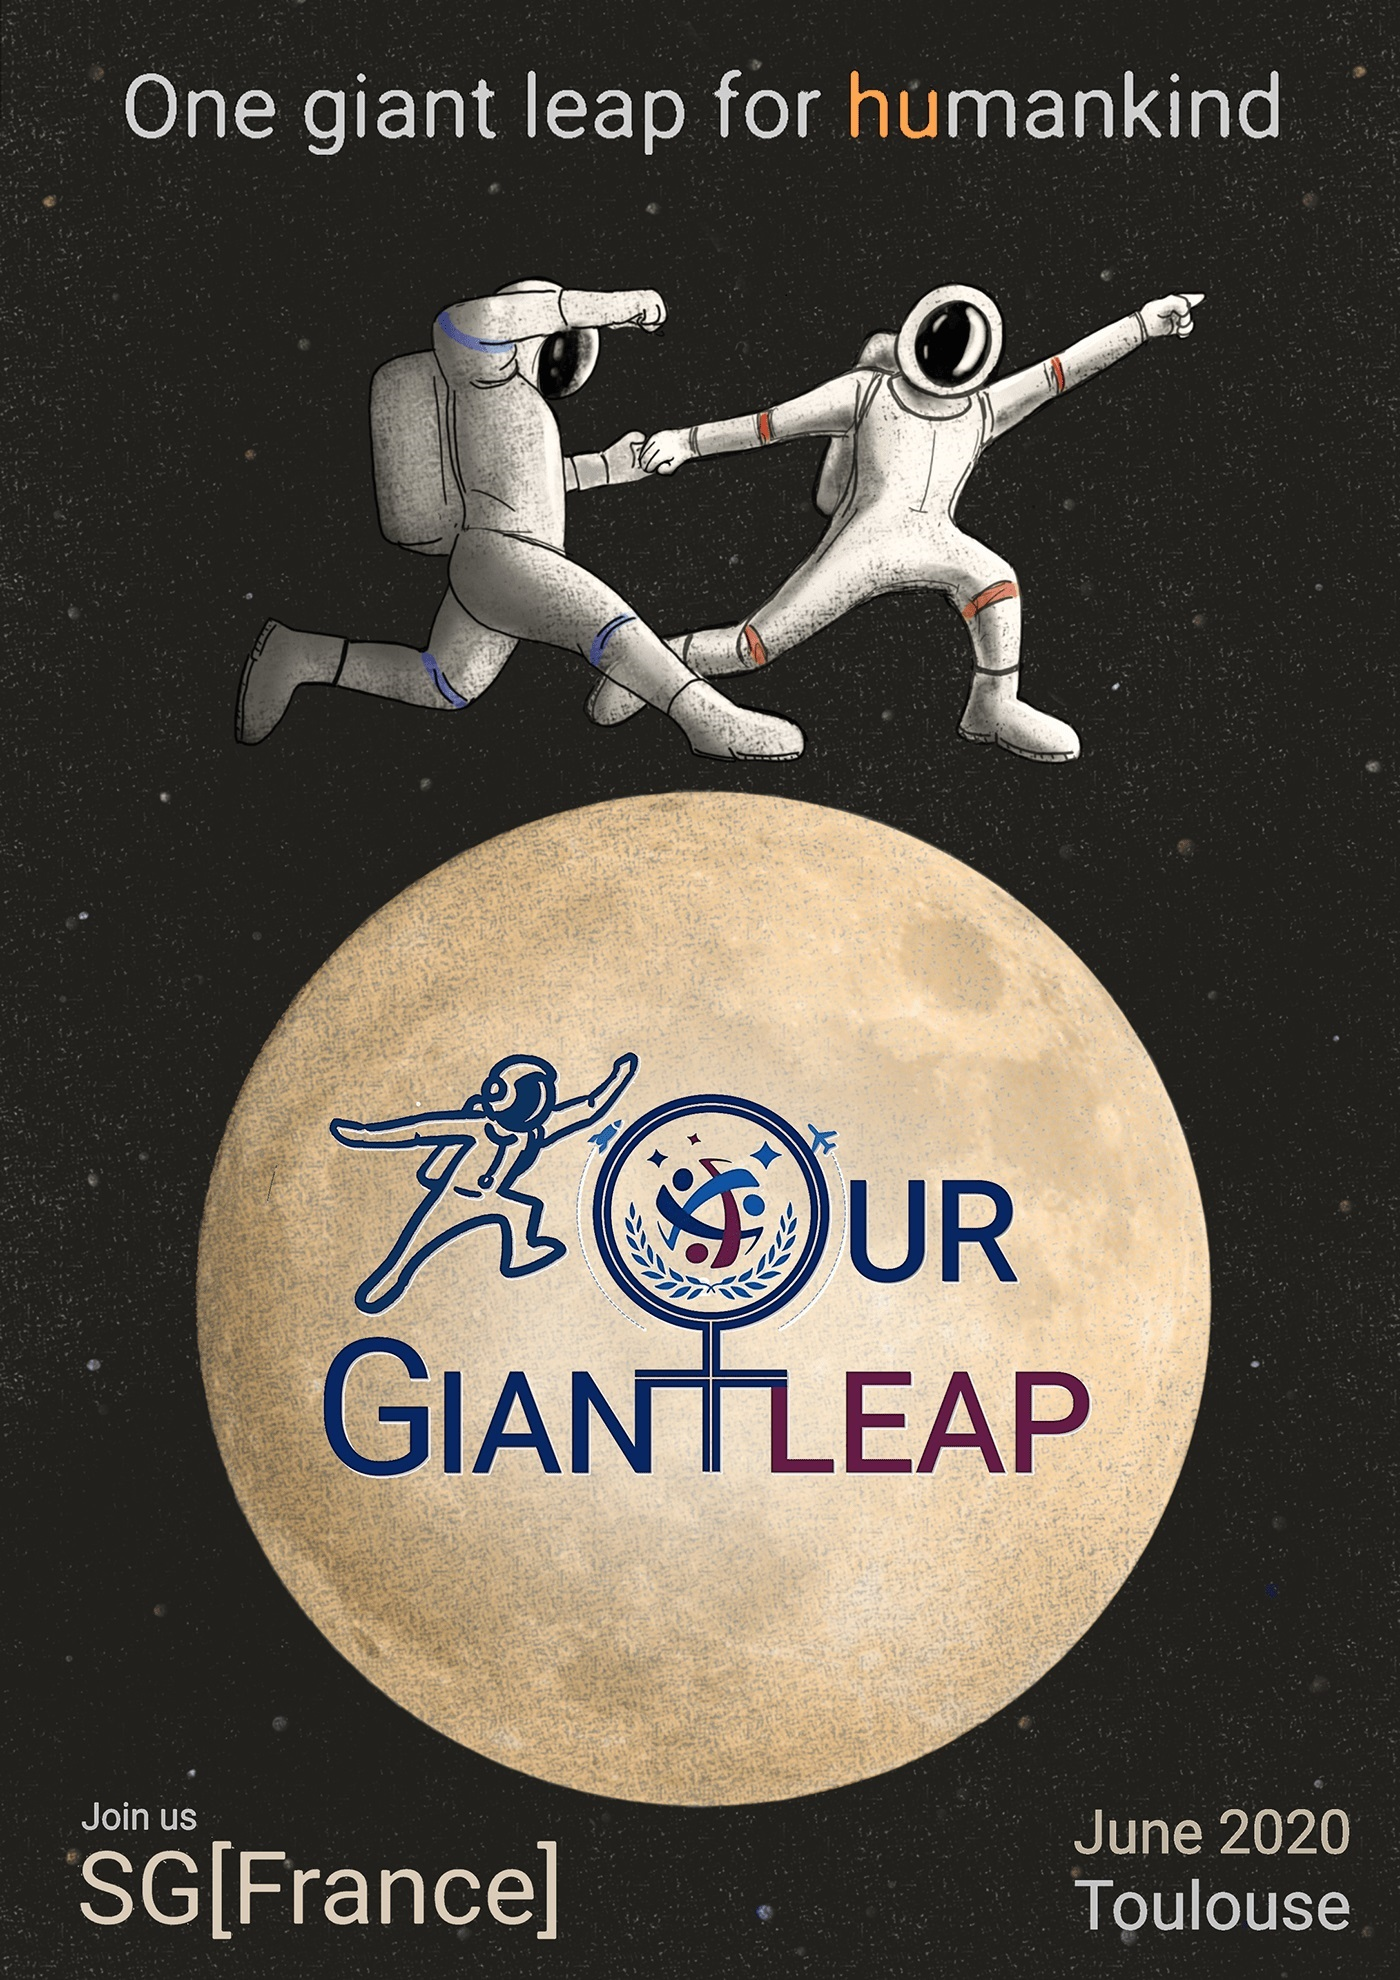 Our Giant Leap poster